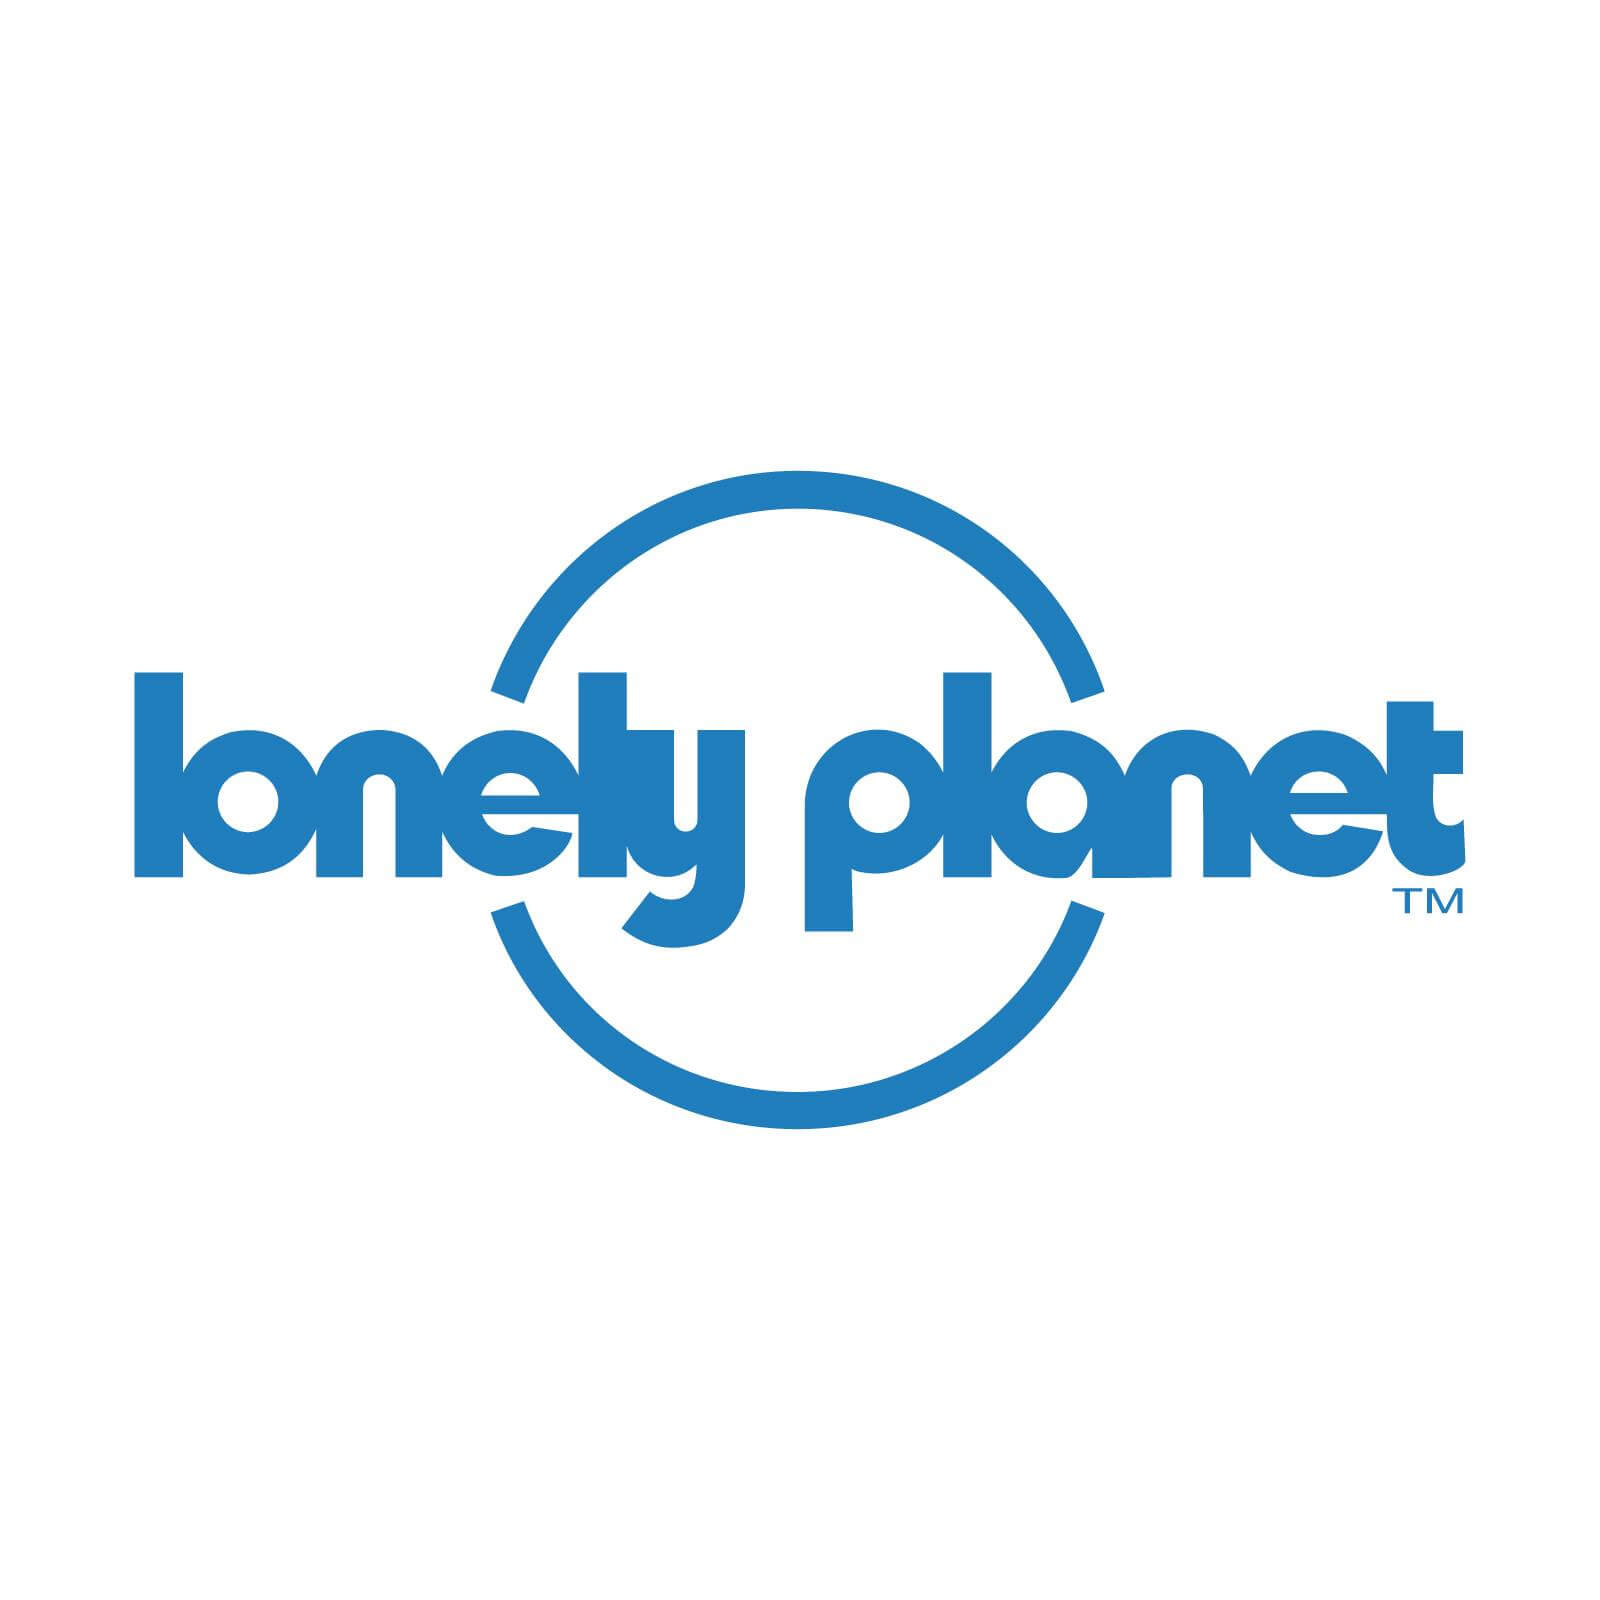 Lonely Planet ČR